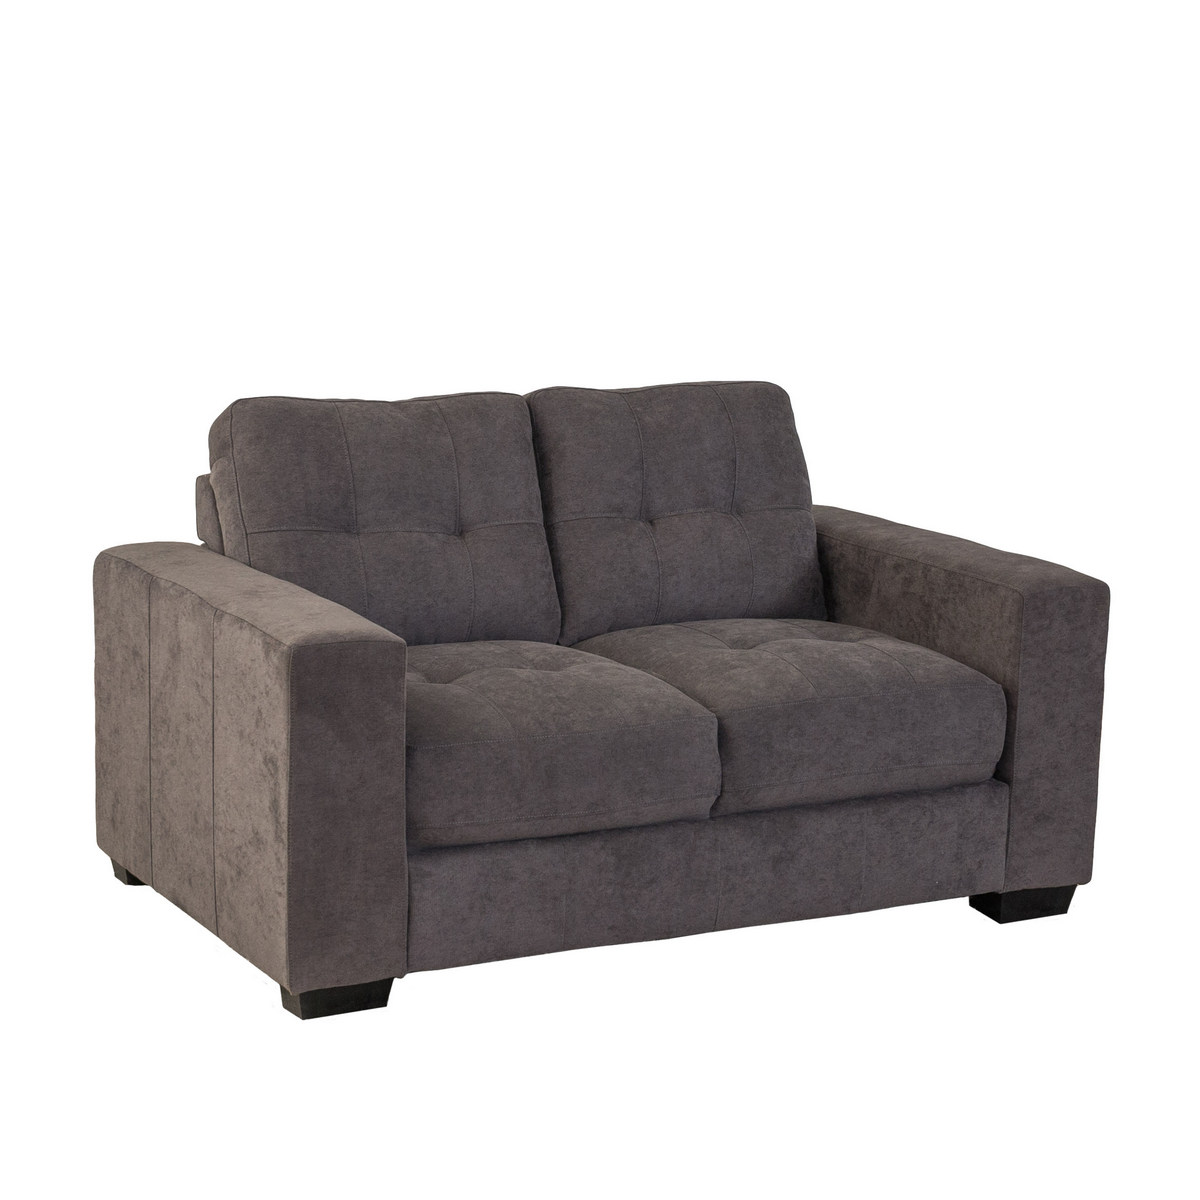 Corliving Club Tufted Grey Chenille Fabric Loveseat